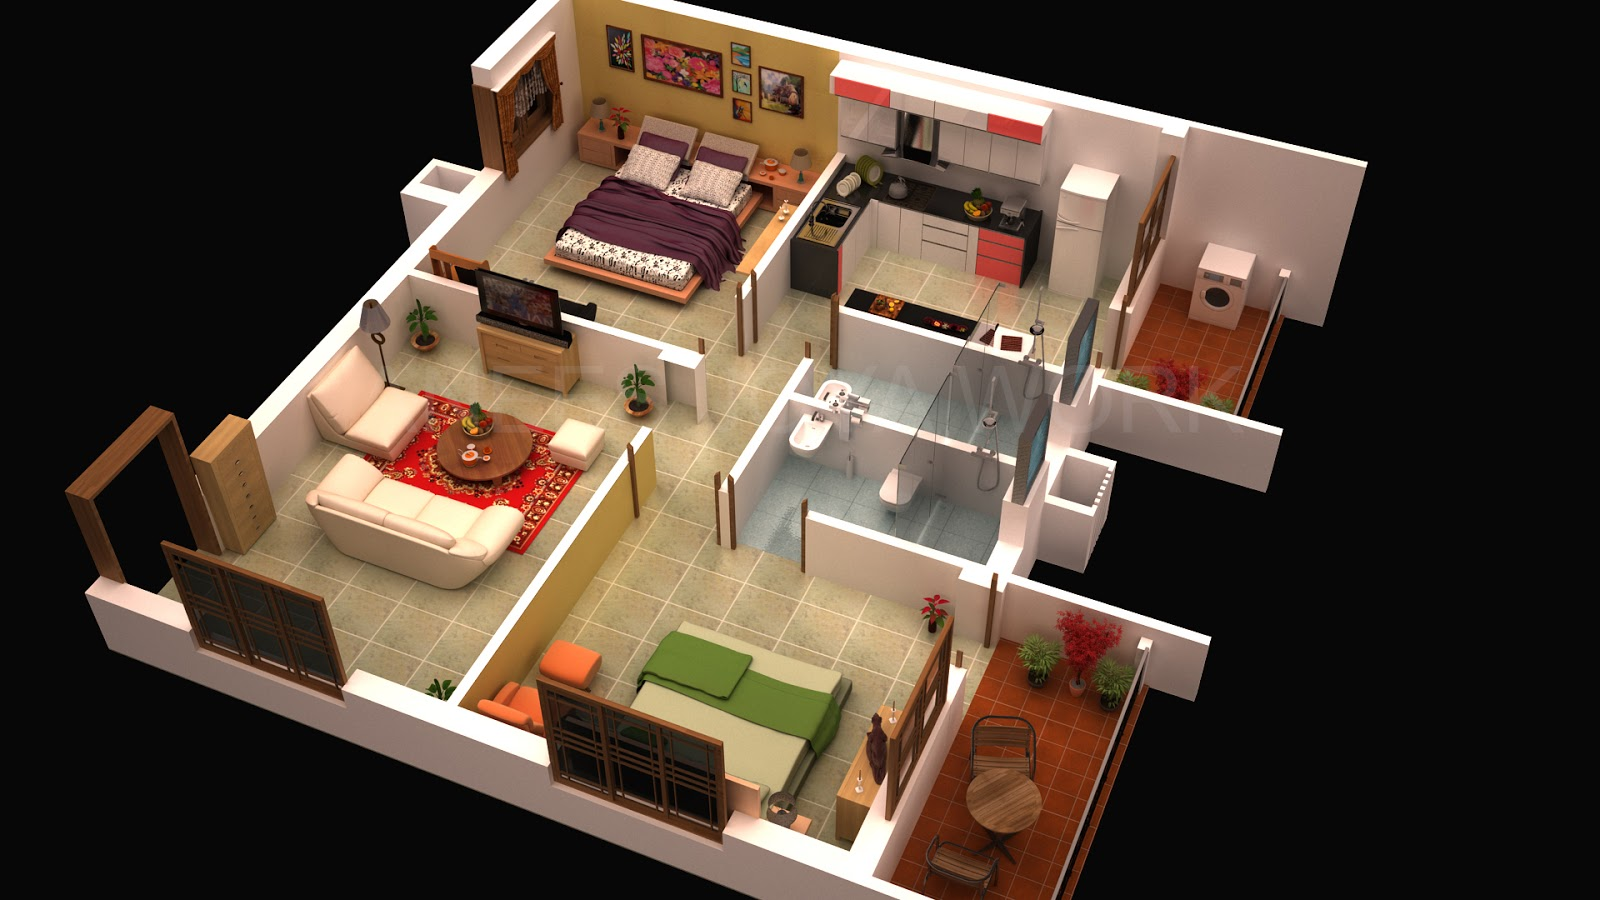 Anees joya works 3d interior design 3ds max vray for 2 bhk interior decoration